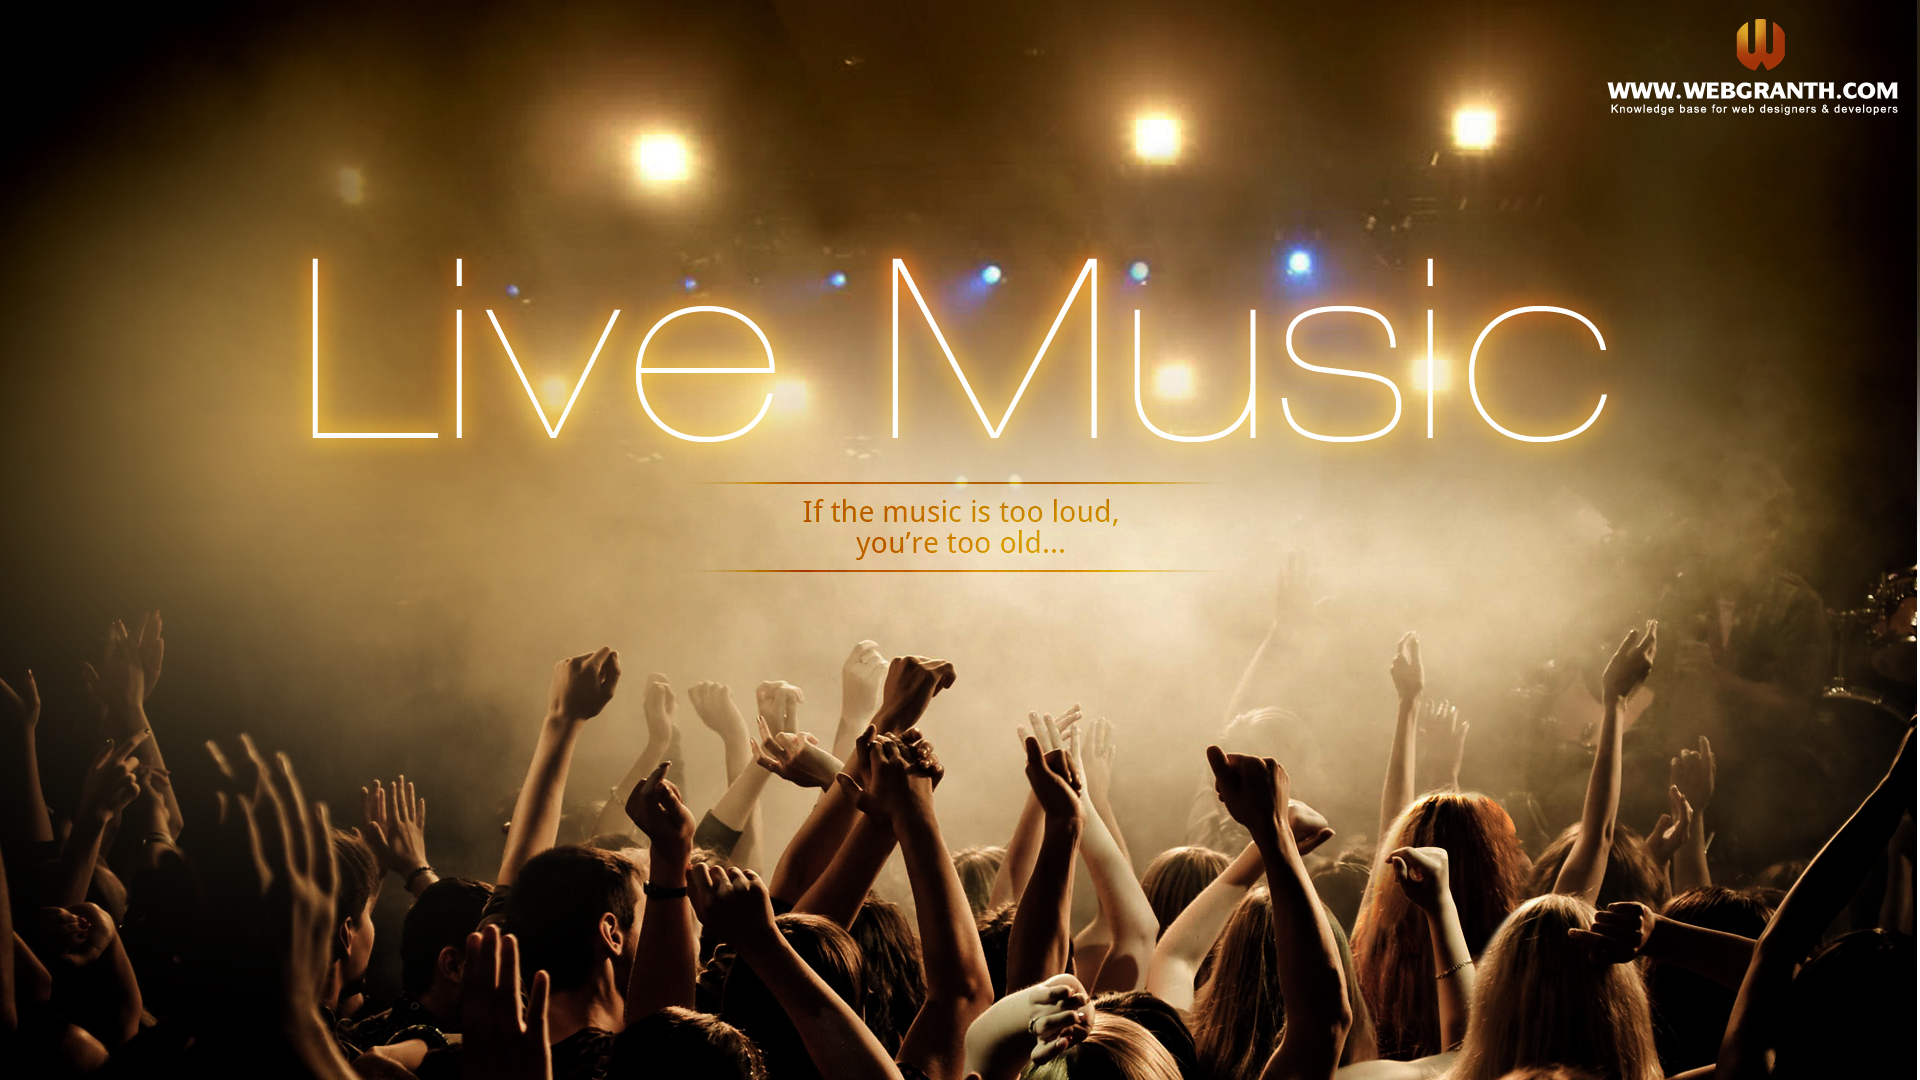 Live hd wallpaper 1920x1080 wallpapersafari - Wallpaper 1920x1080 music ...